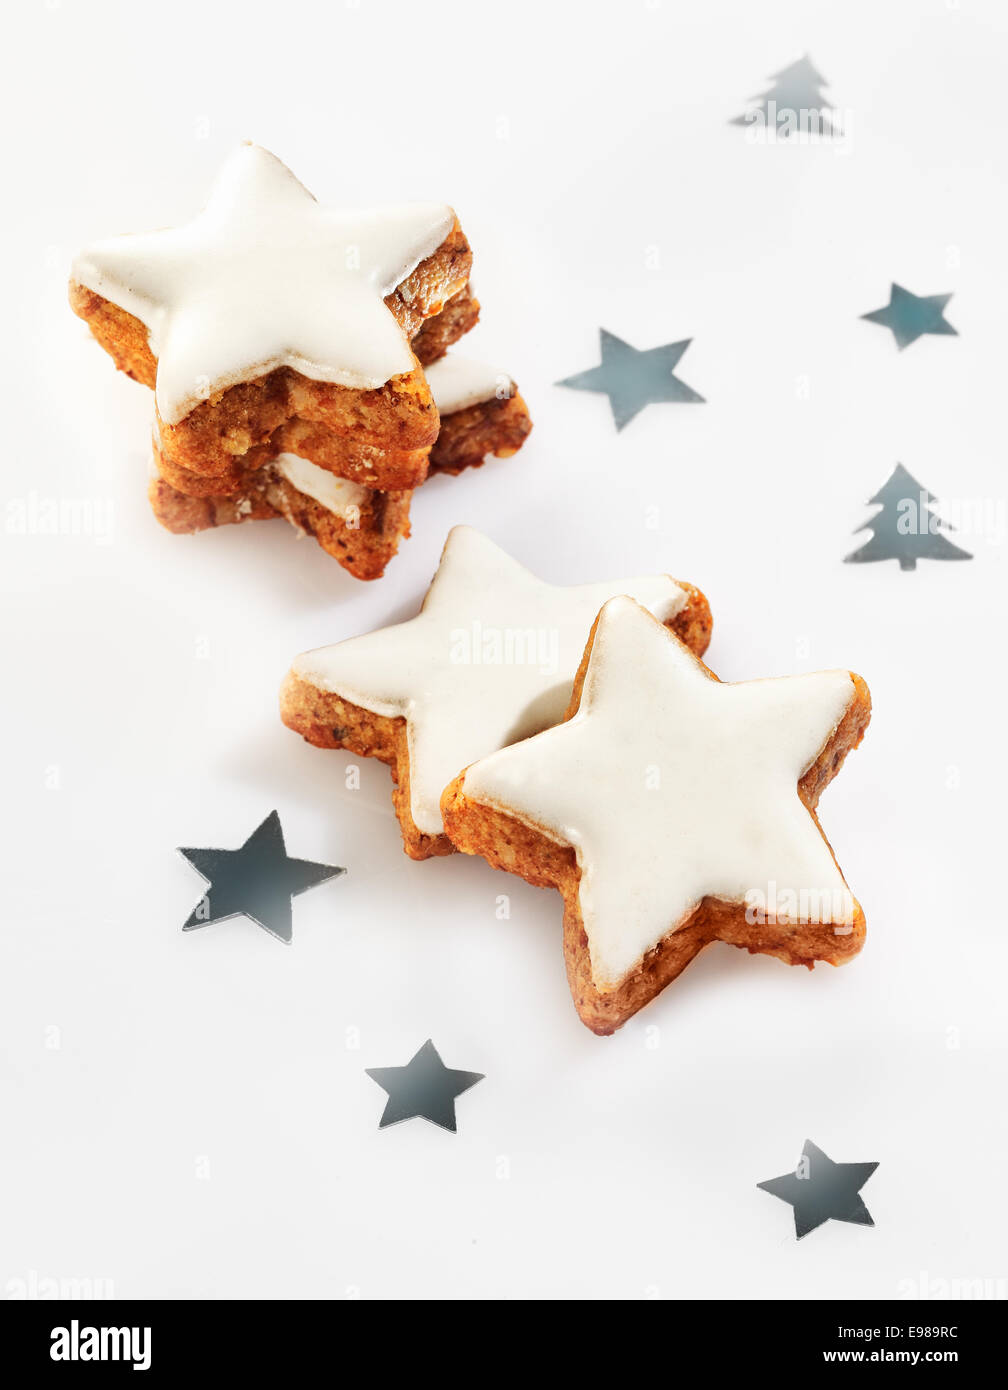 Delicious Fresh Crunchy Christmas Star Cookies With Decorative White